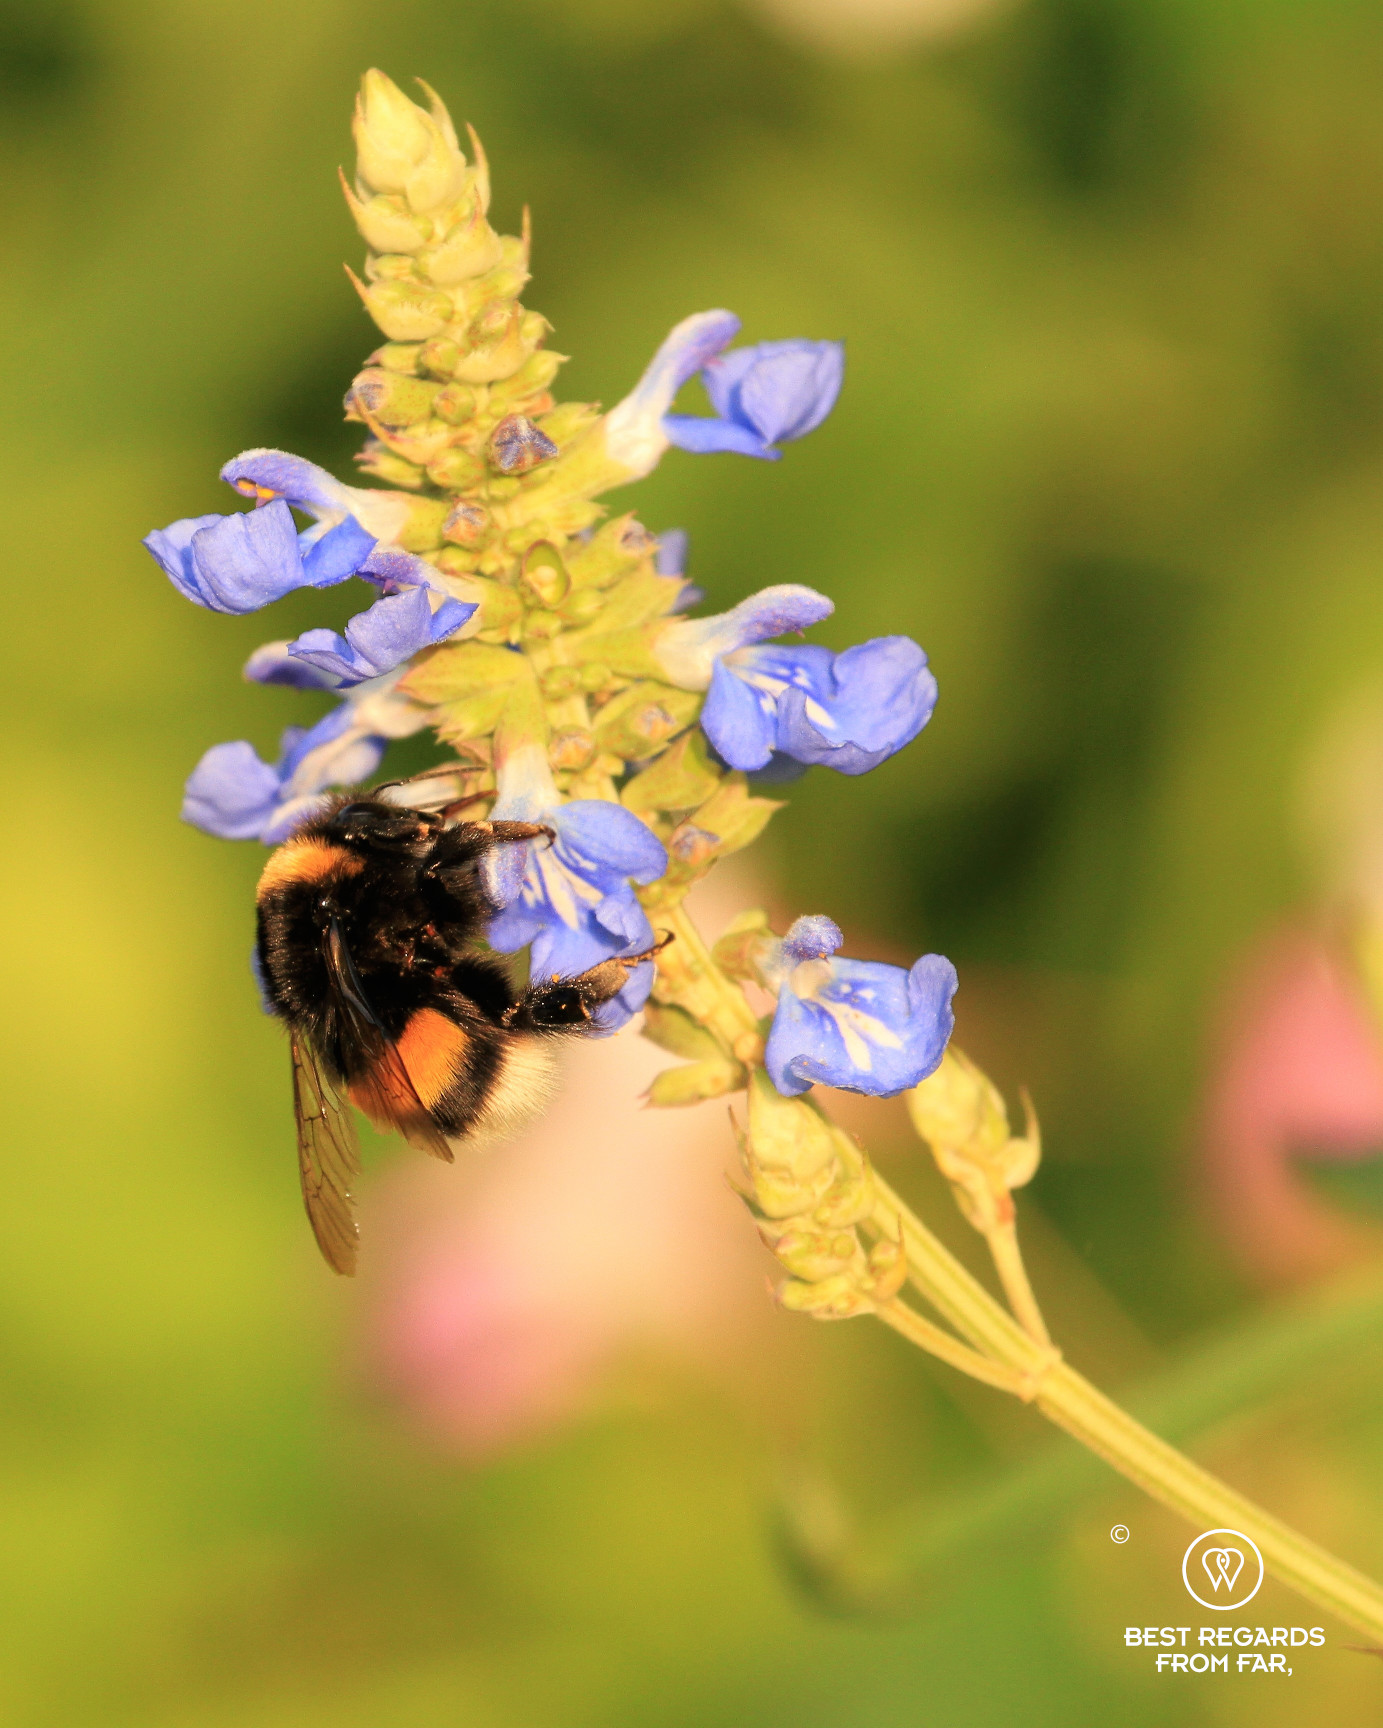 Bumble bee in Claude Monet's garden in Giverny, France